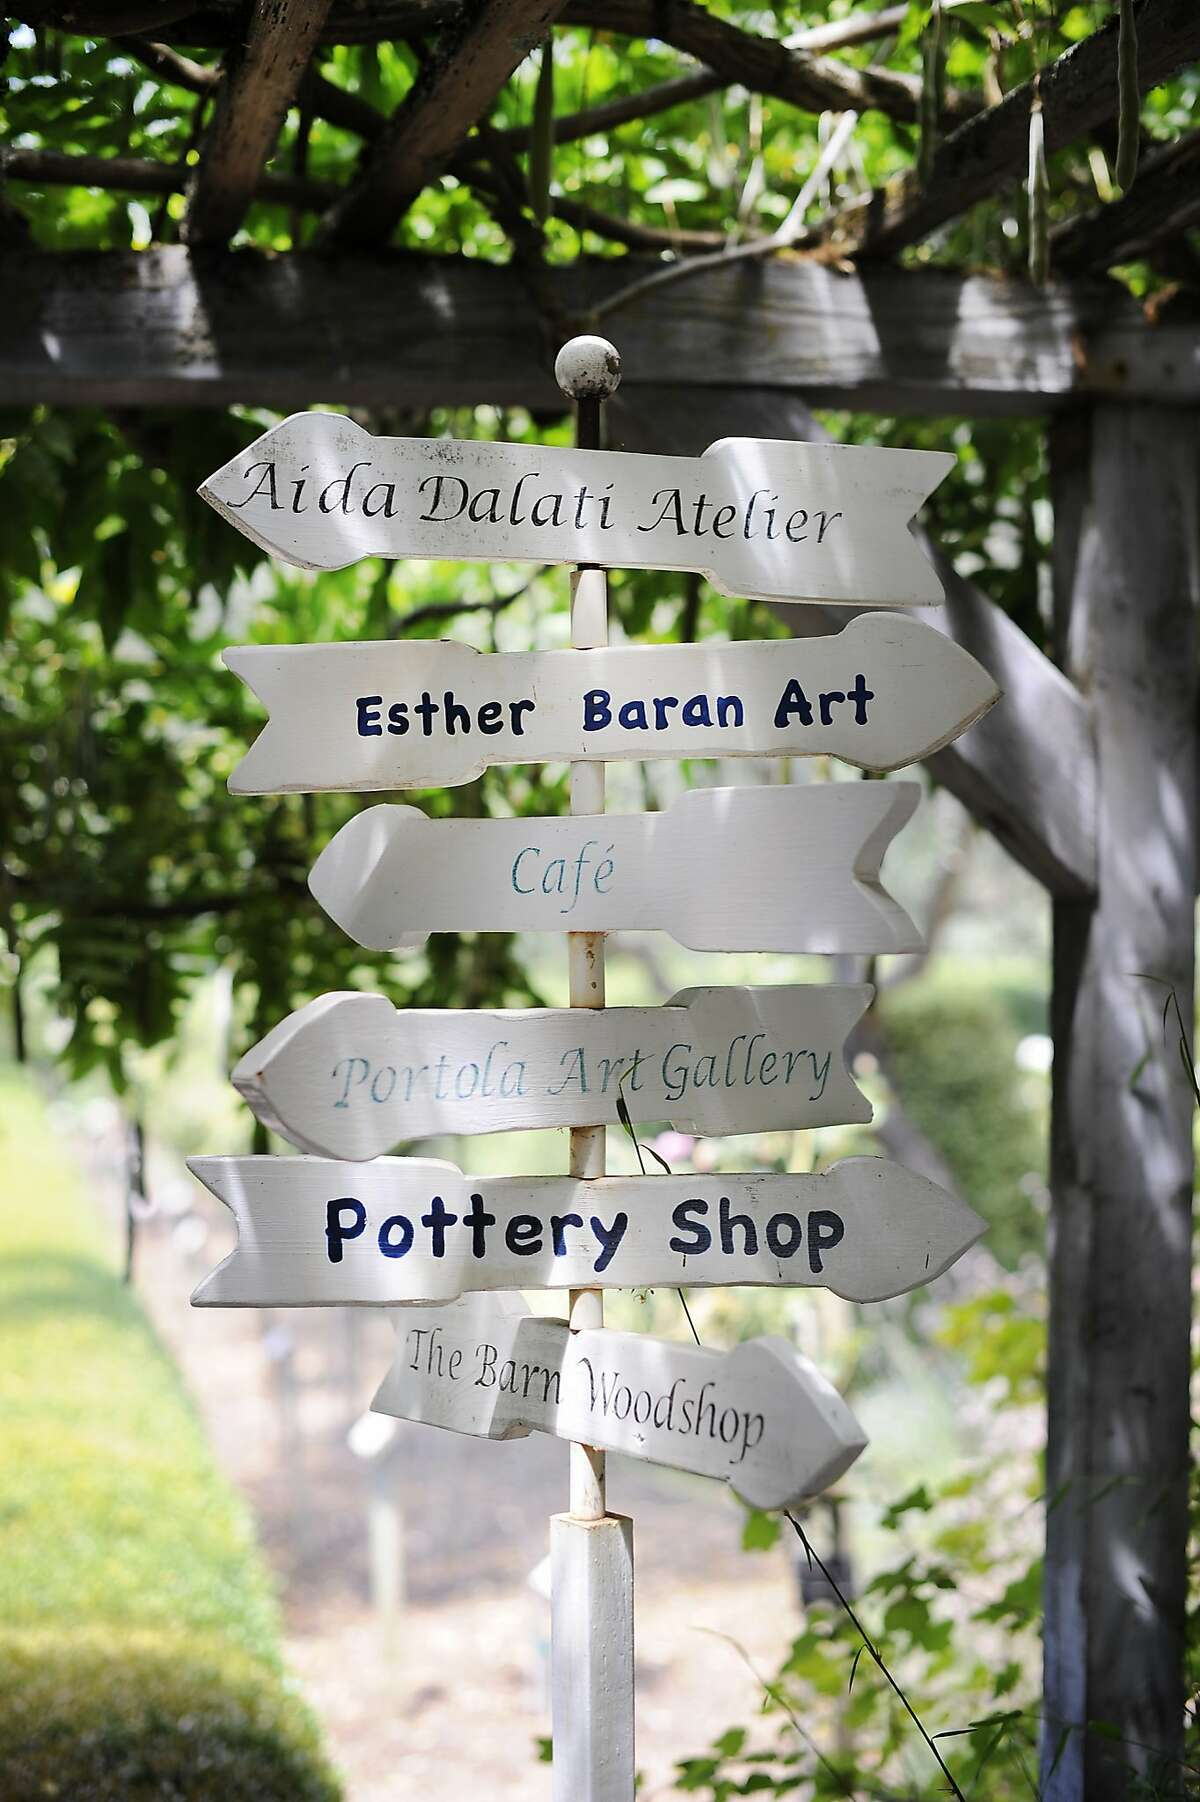 Signs point visitors to various artist's shops in the gardens of the Allied Arts Guild in Menlo Park, CA Monday, August 10, 2015.